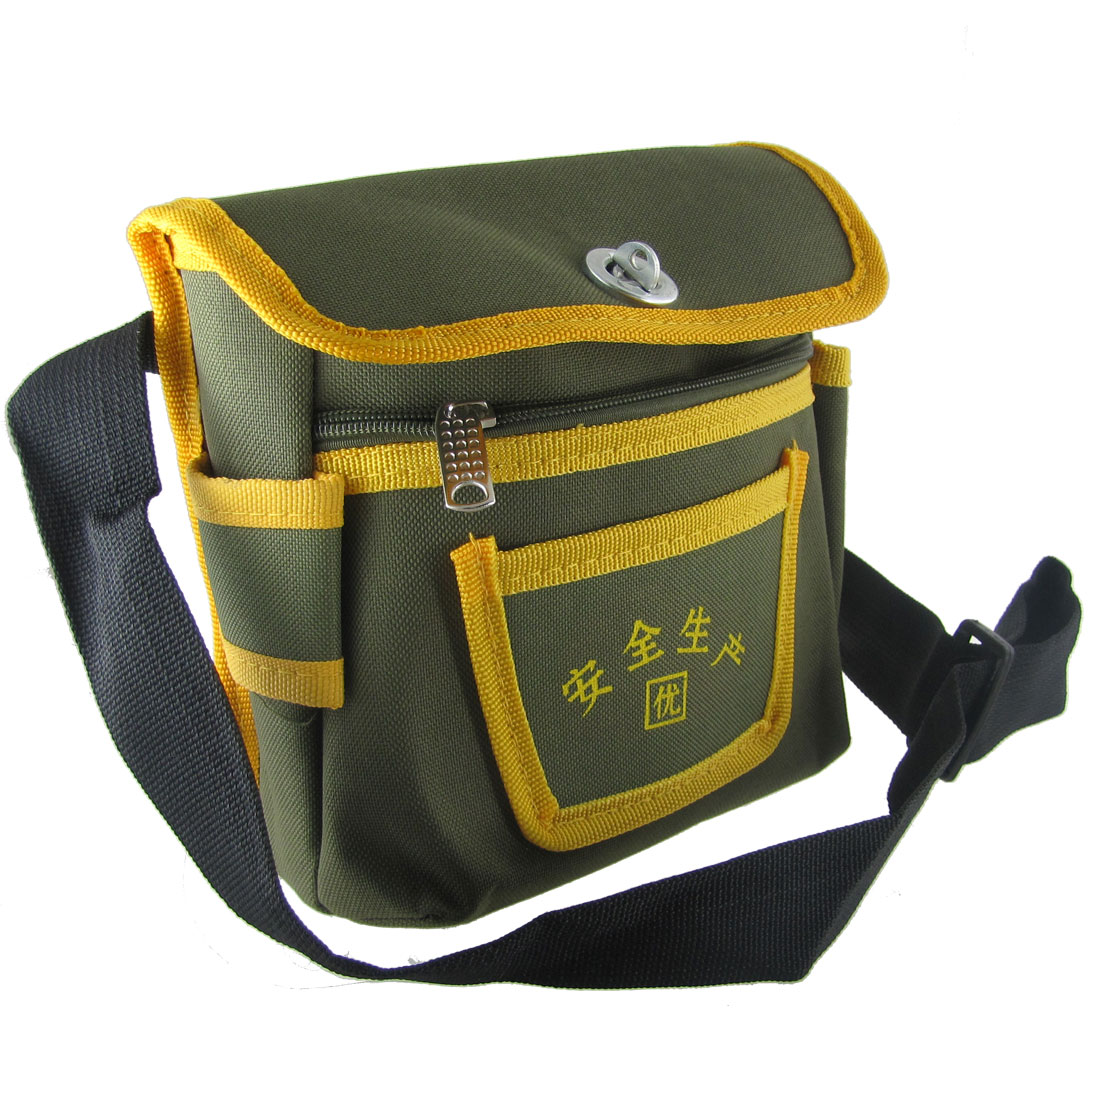 Army Green Yellow Nylon Electrician Canvas Bags w Adjustable Shoulder Strap